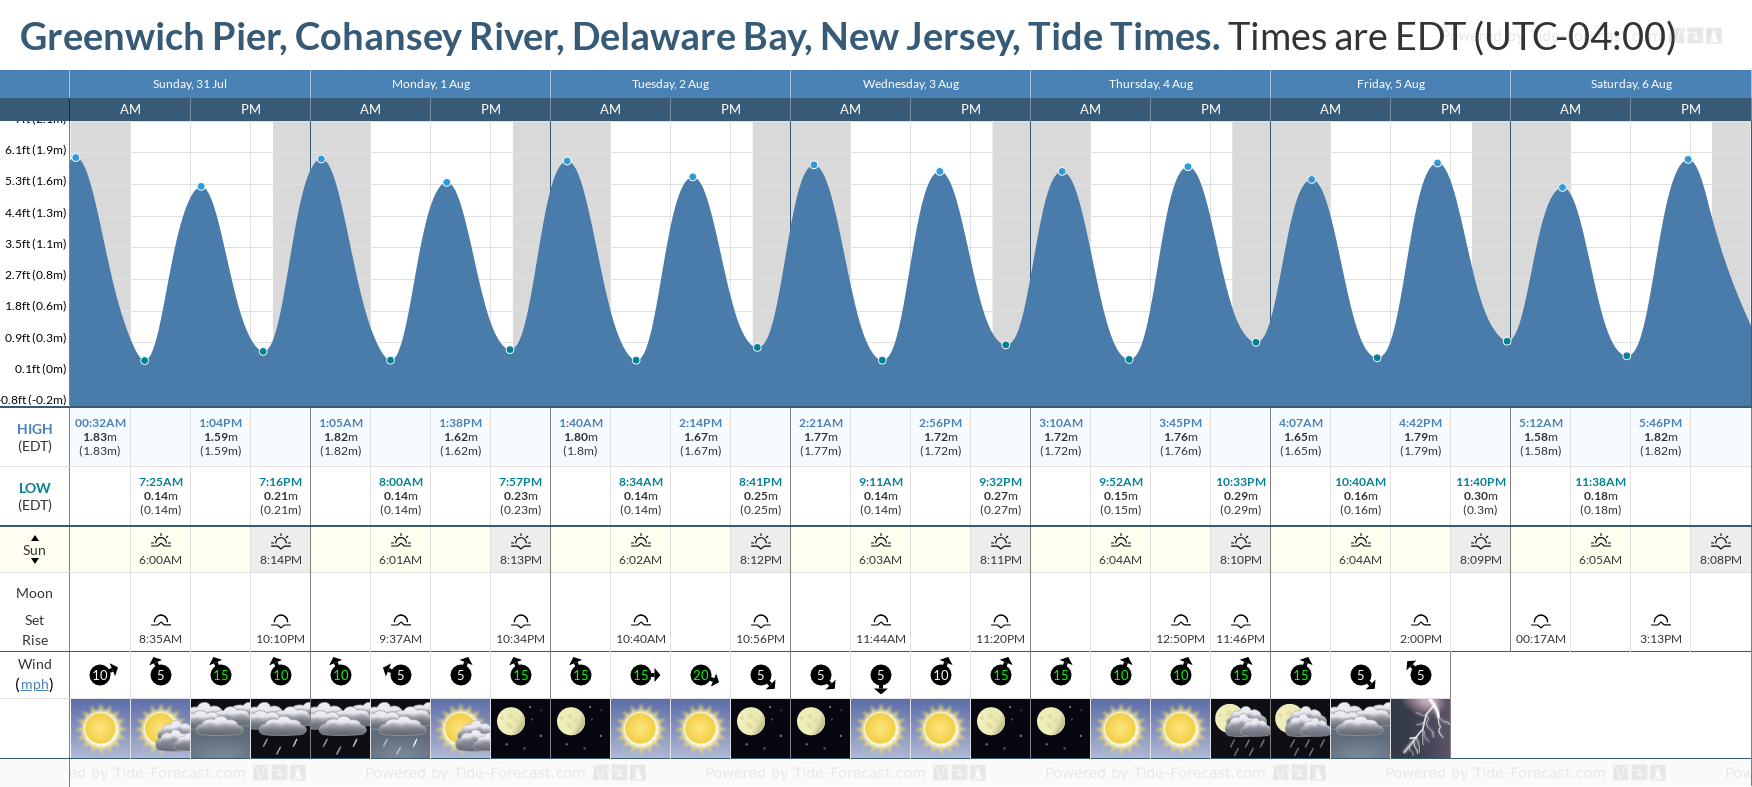 Greenwich Pier, Cohansey River, Delaware Bay, New Jersey Tide Chart including high and low tide tide times for the next 7 days